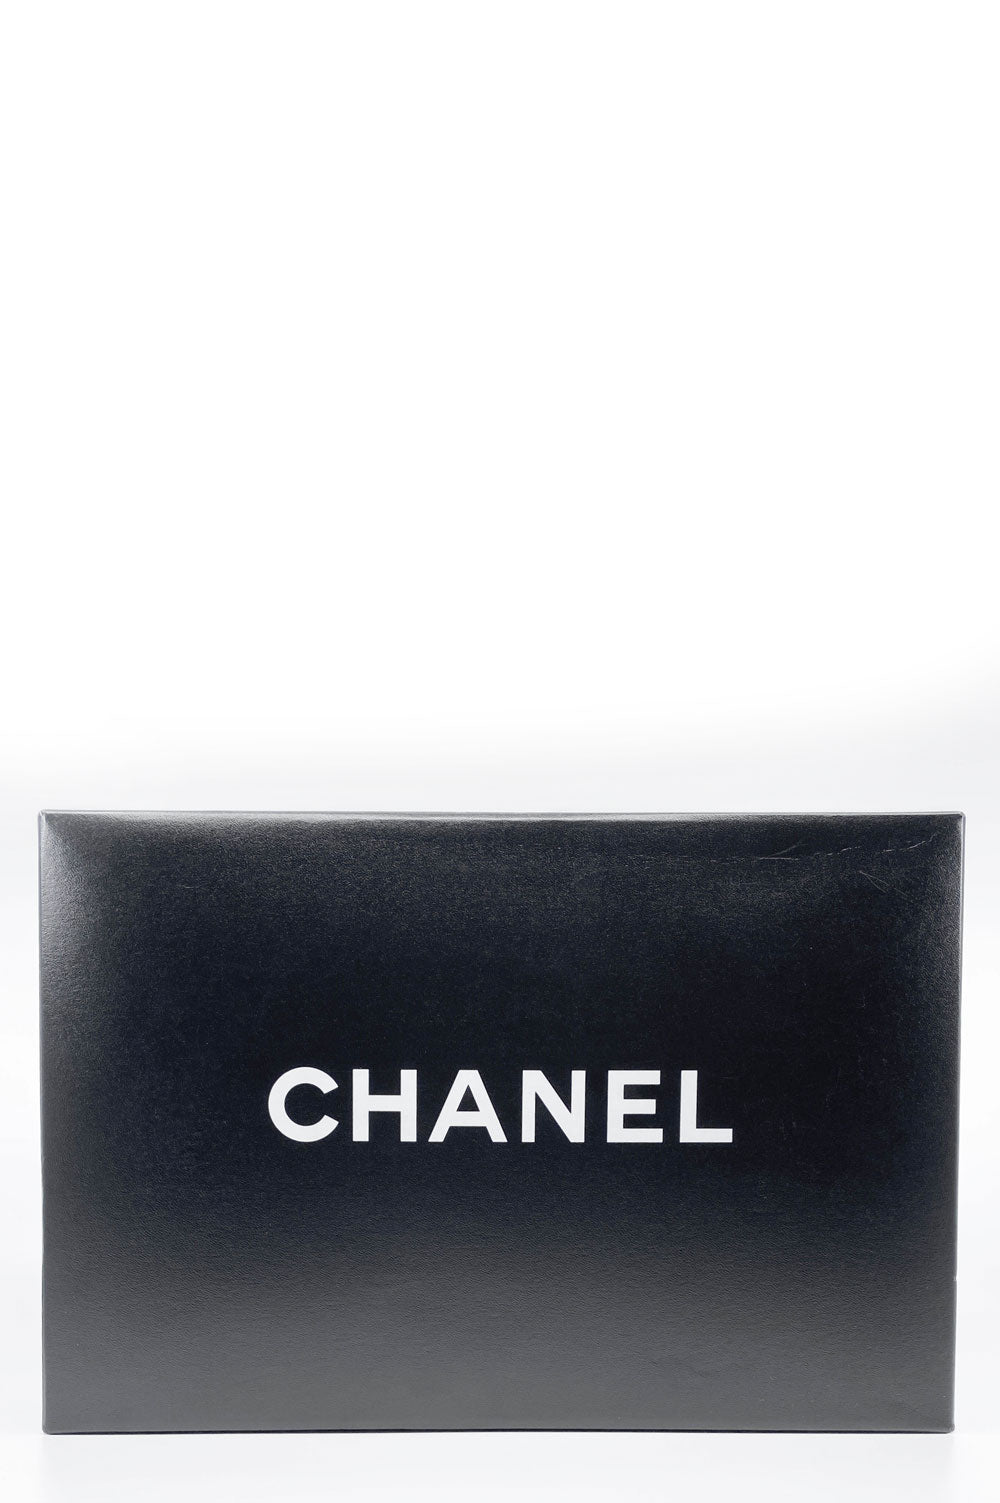 CHANEL Lifesaver Coco Round Bag